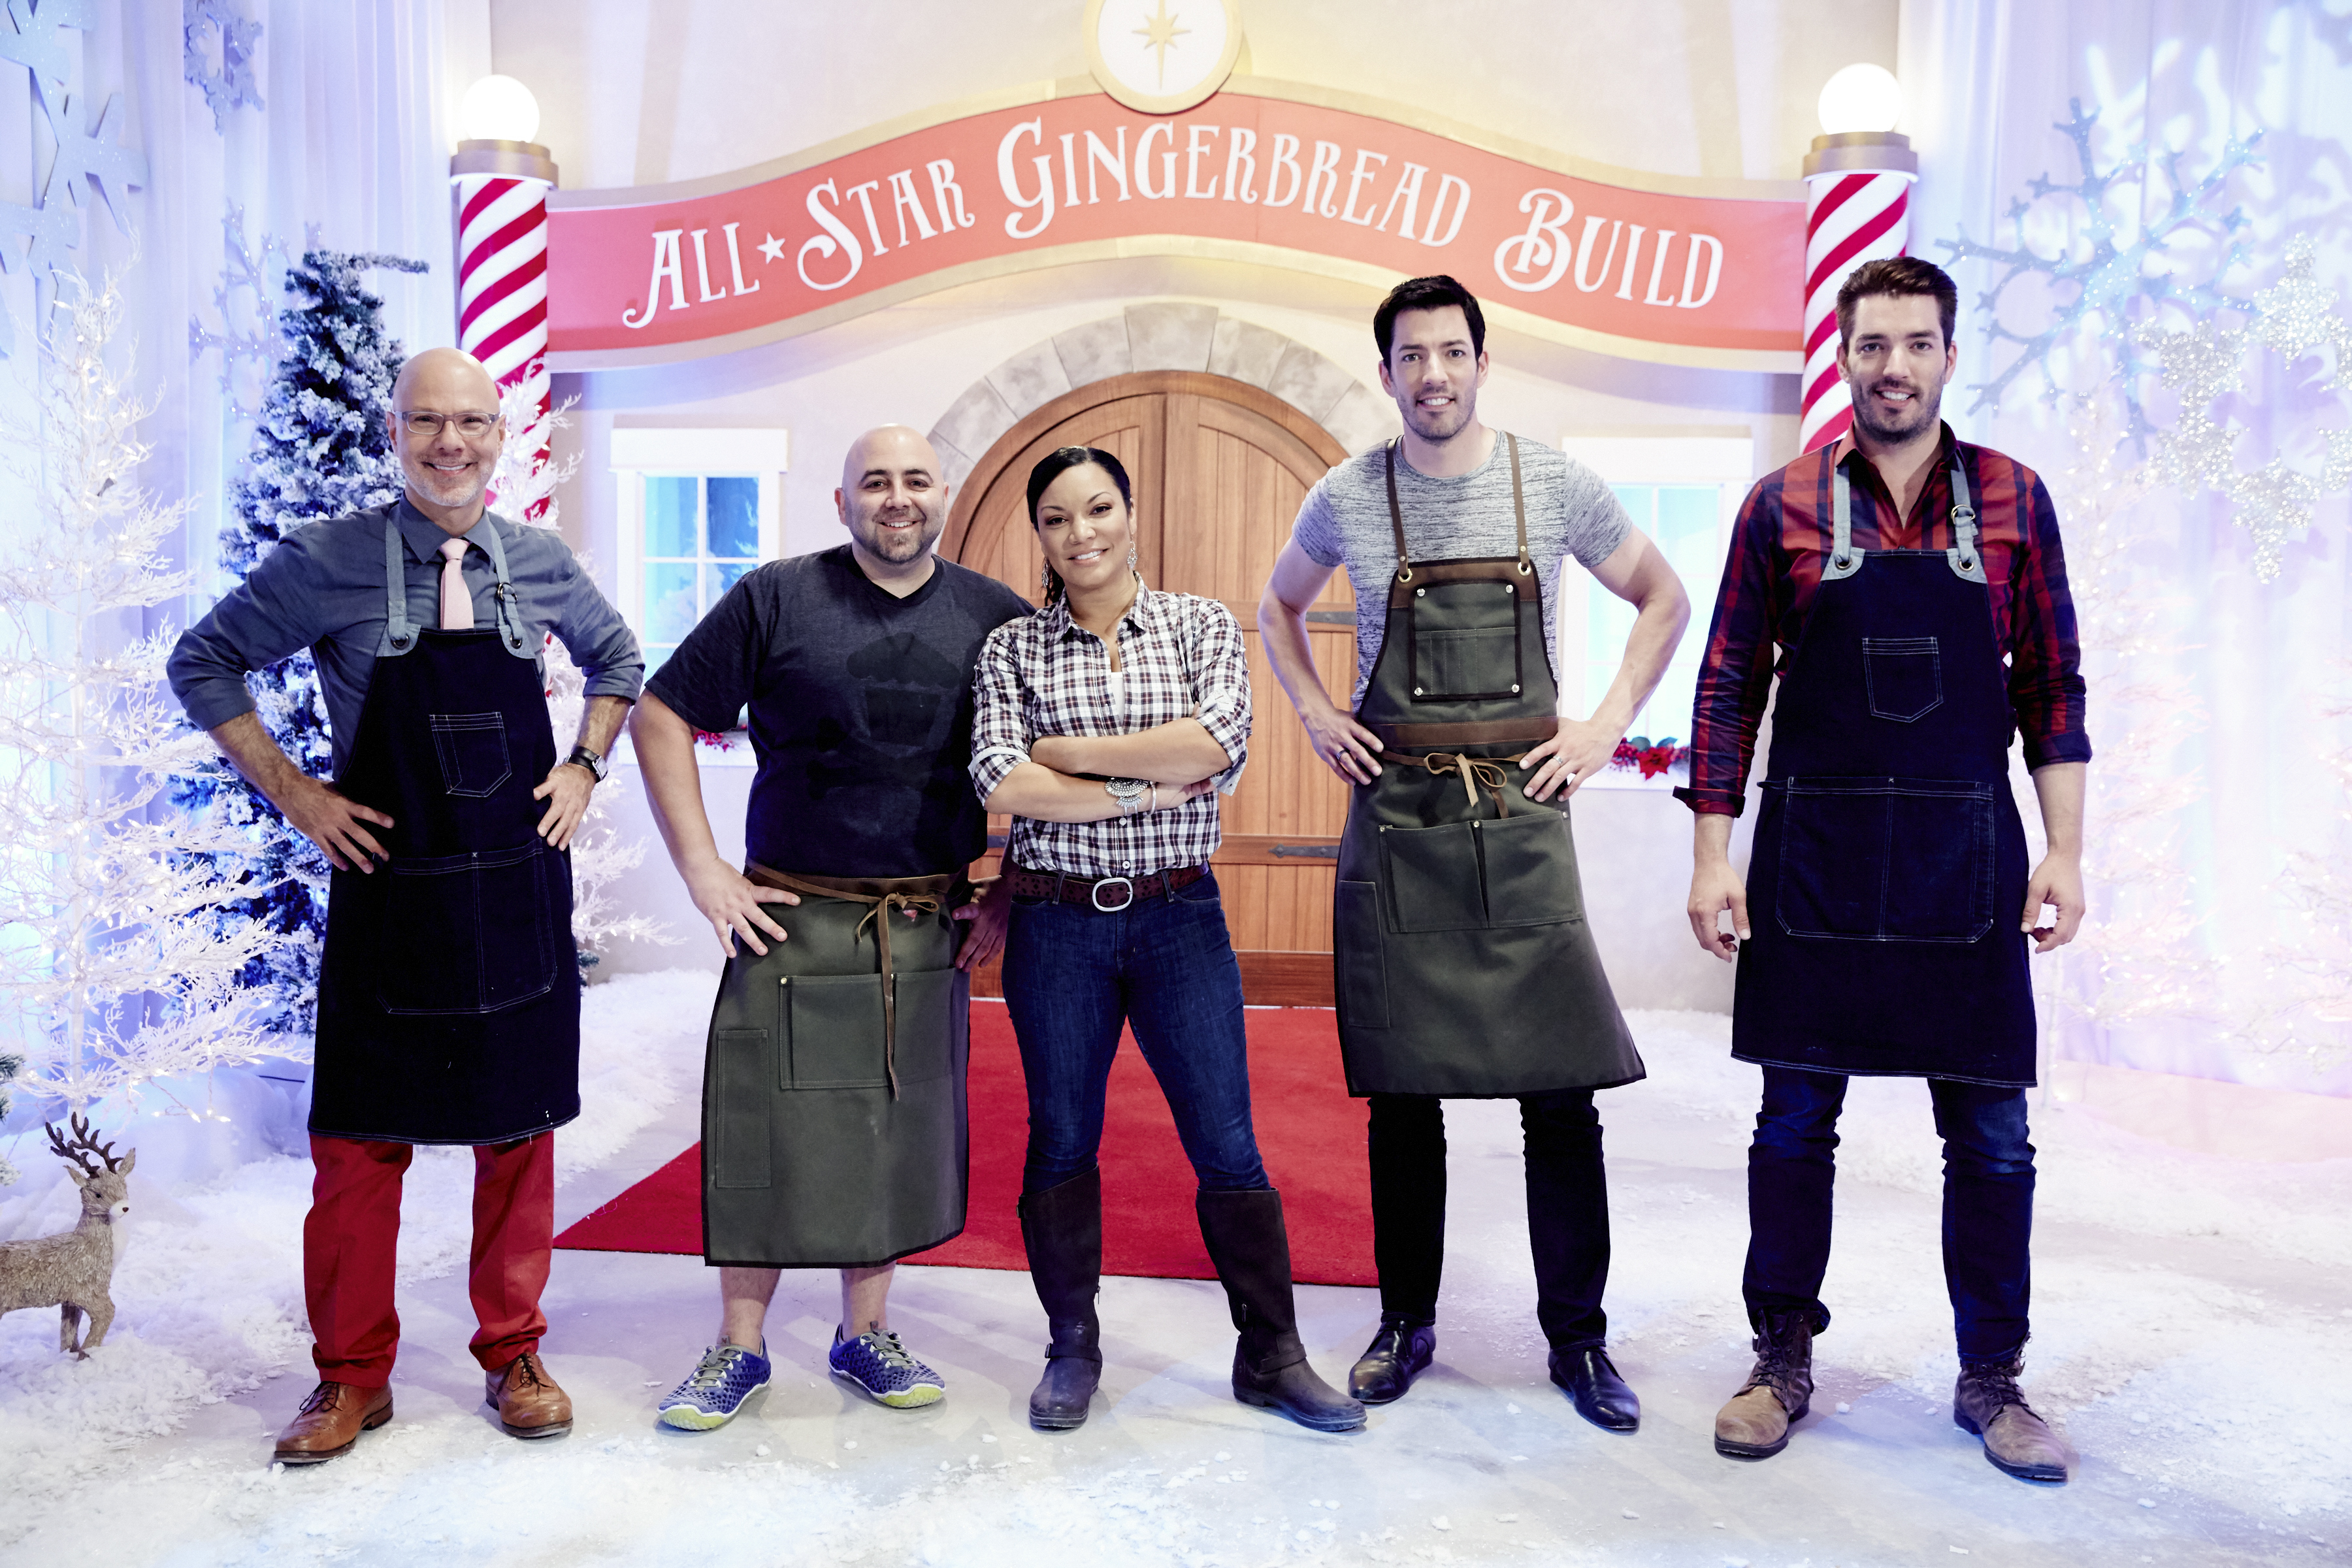 Hgtv and food network simulcast all star gingerbread build nov 28 hgtv and food network simulcast all star gingerbread build nov 28 business wire forumfinder Choice Image